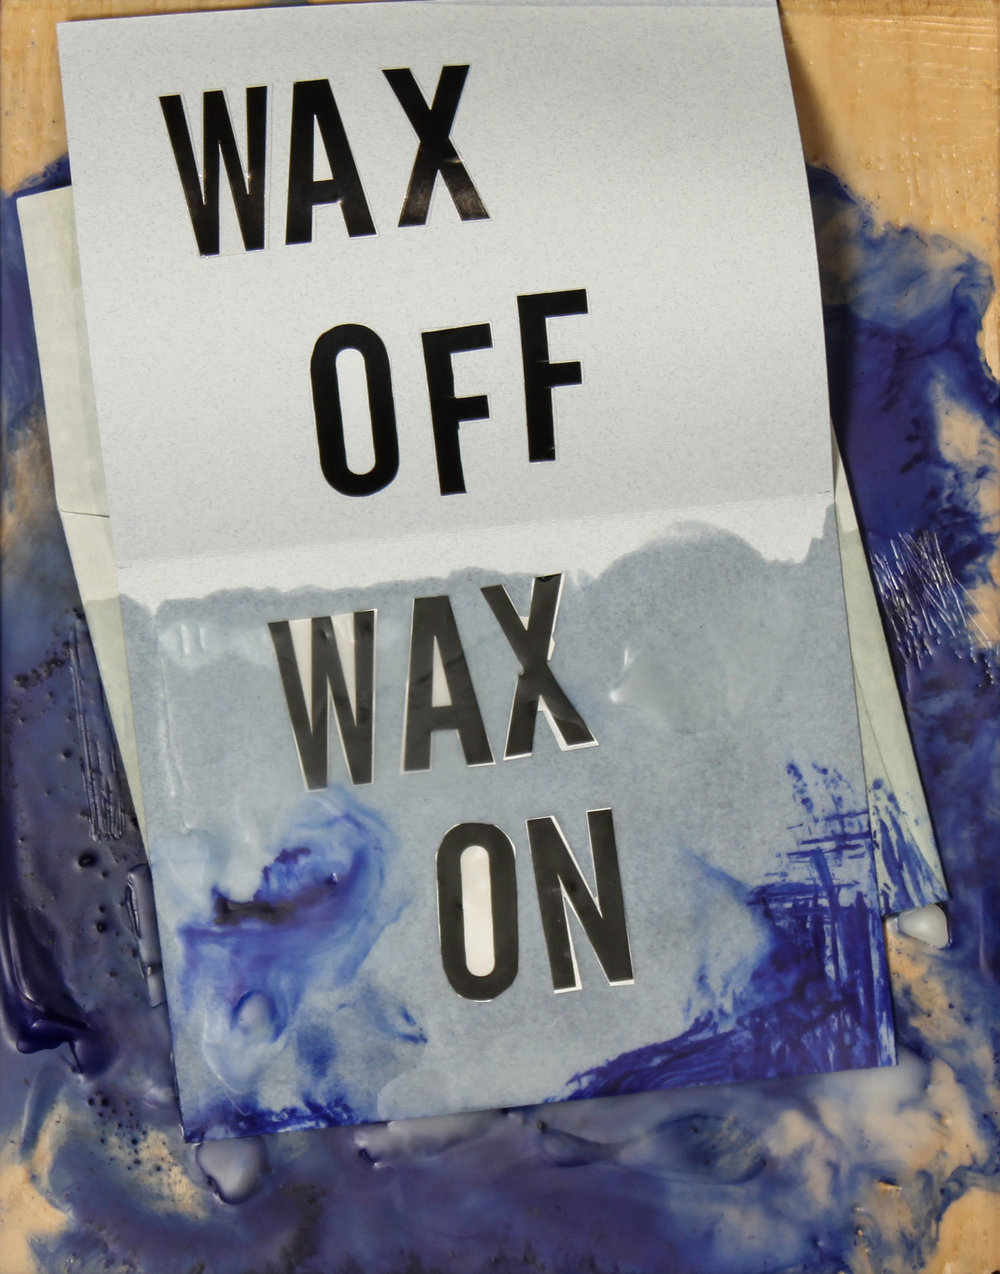 """WAX ON - WAX OFF""    ( image B )"